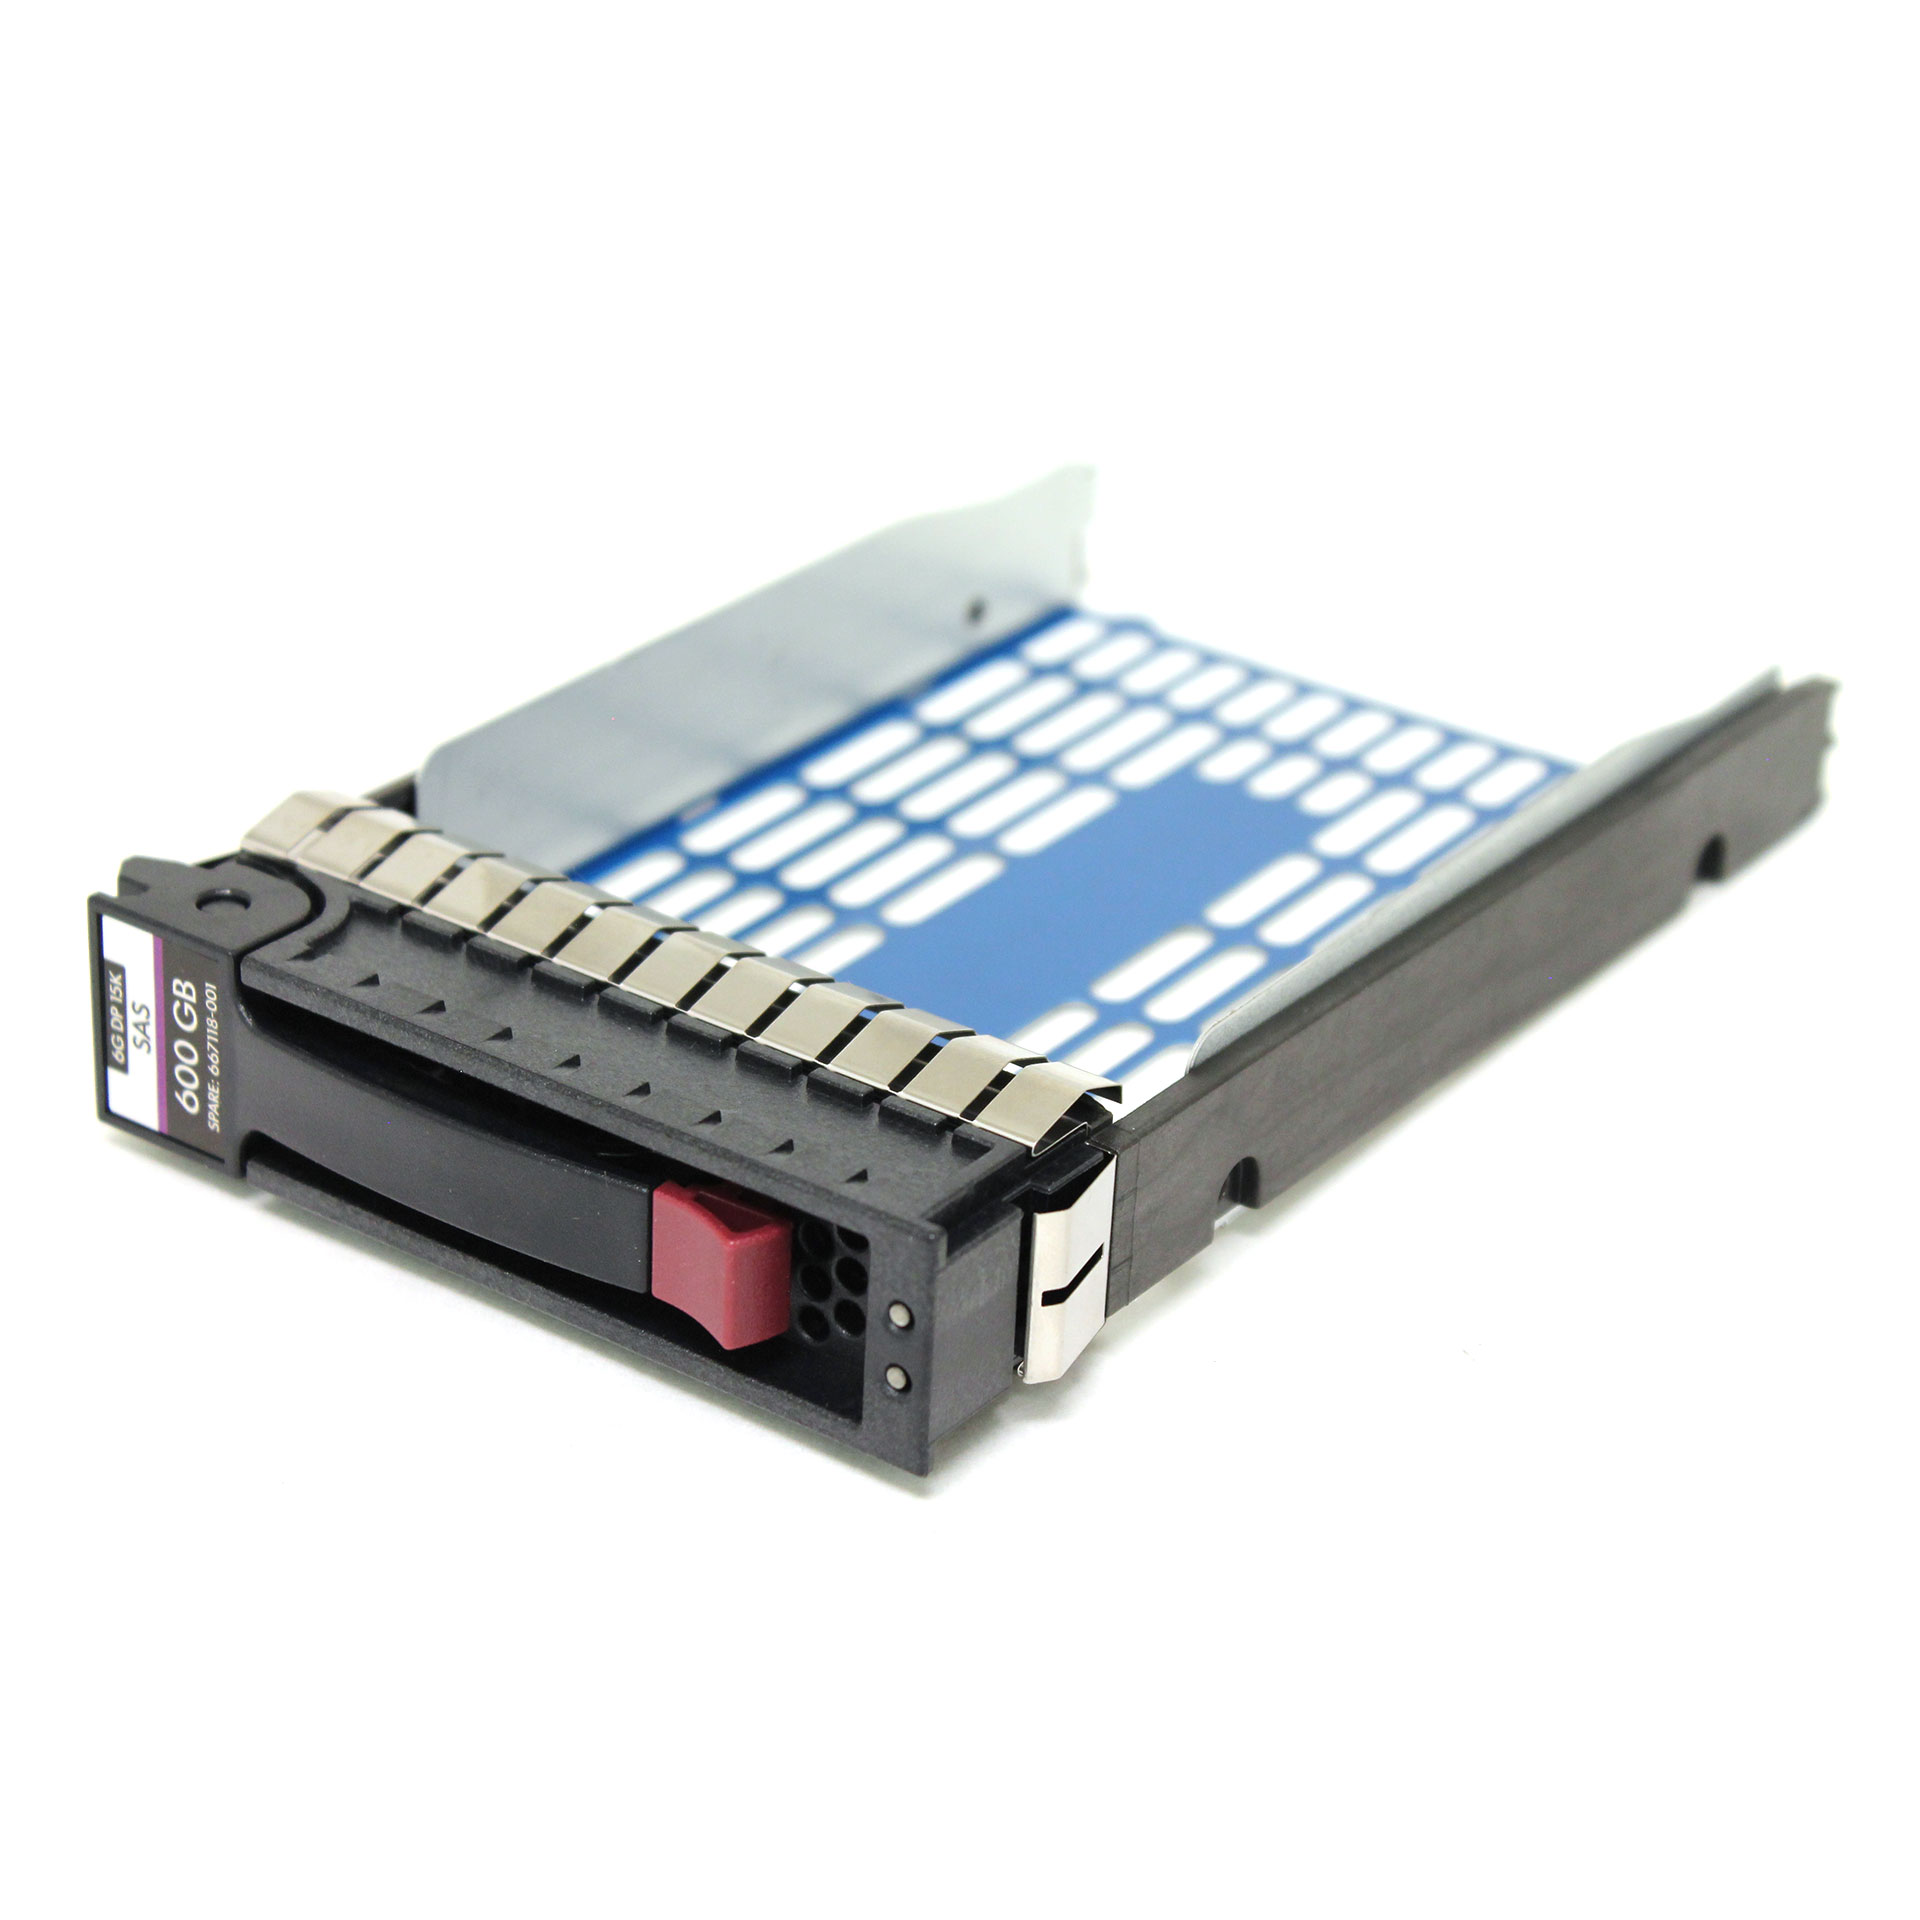 HP Hard Disk Drive HDD Server Caddy/Tray/Sled 335537